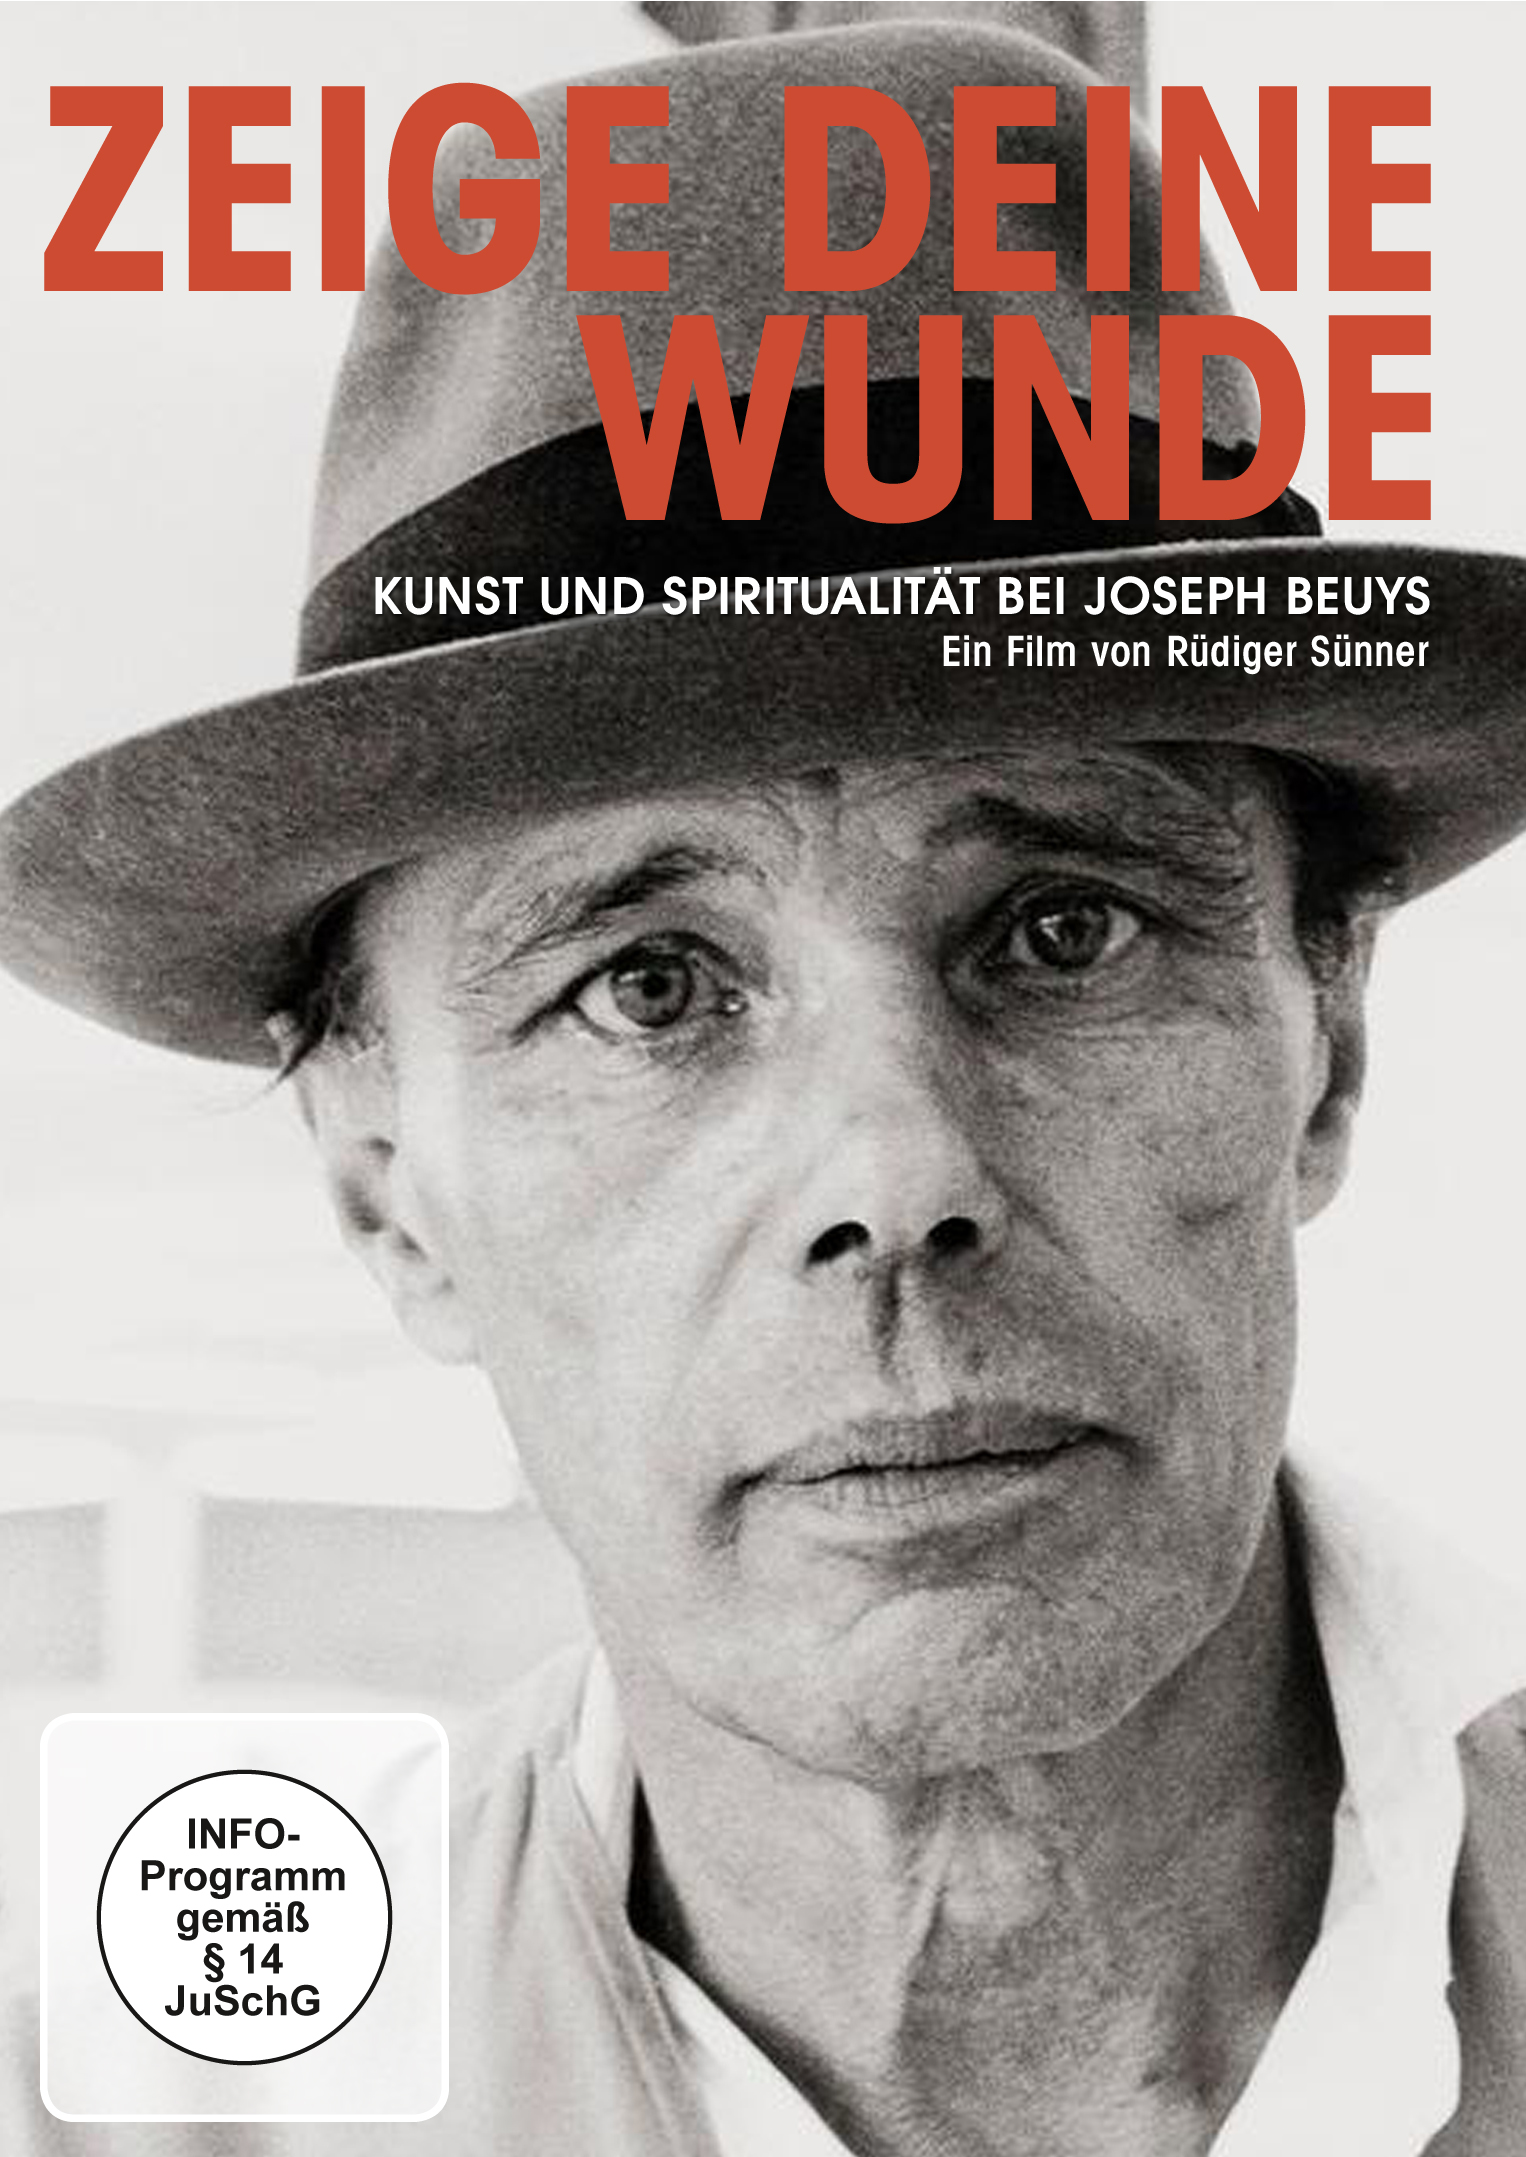 zeige deine wunde kunst und spiritualit t bei joseph beuys bilder und fotos. Black Bedroom Furniture Sets. Home Design Ideas